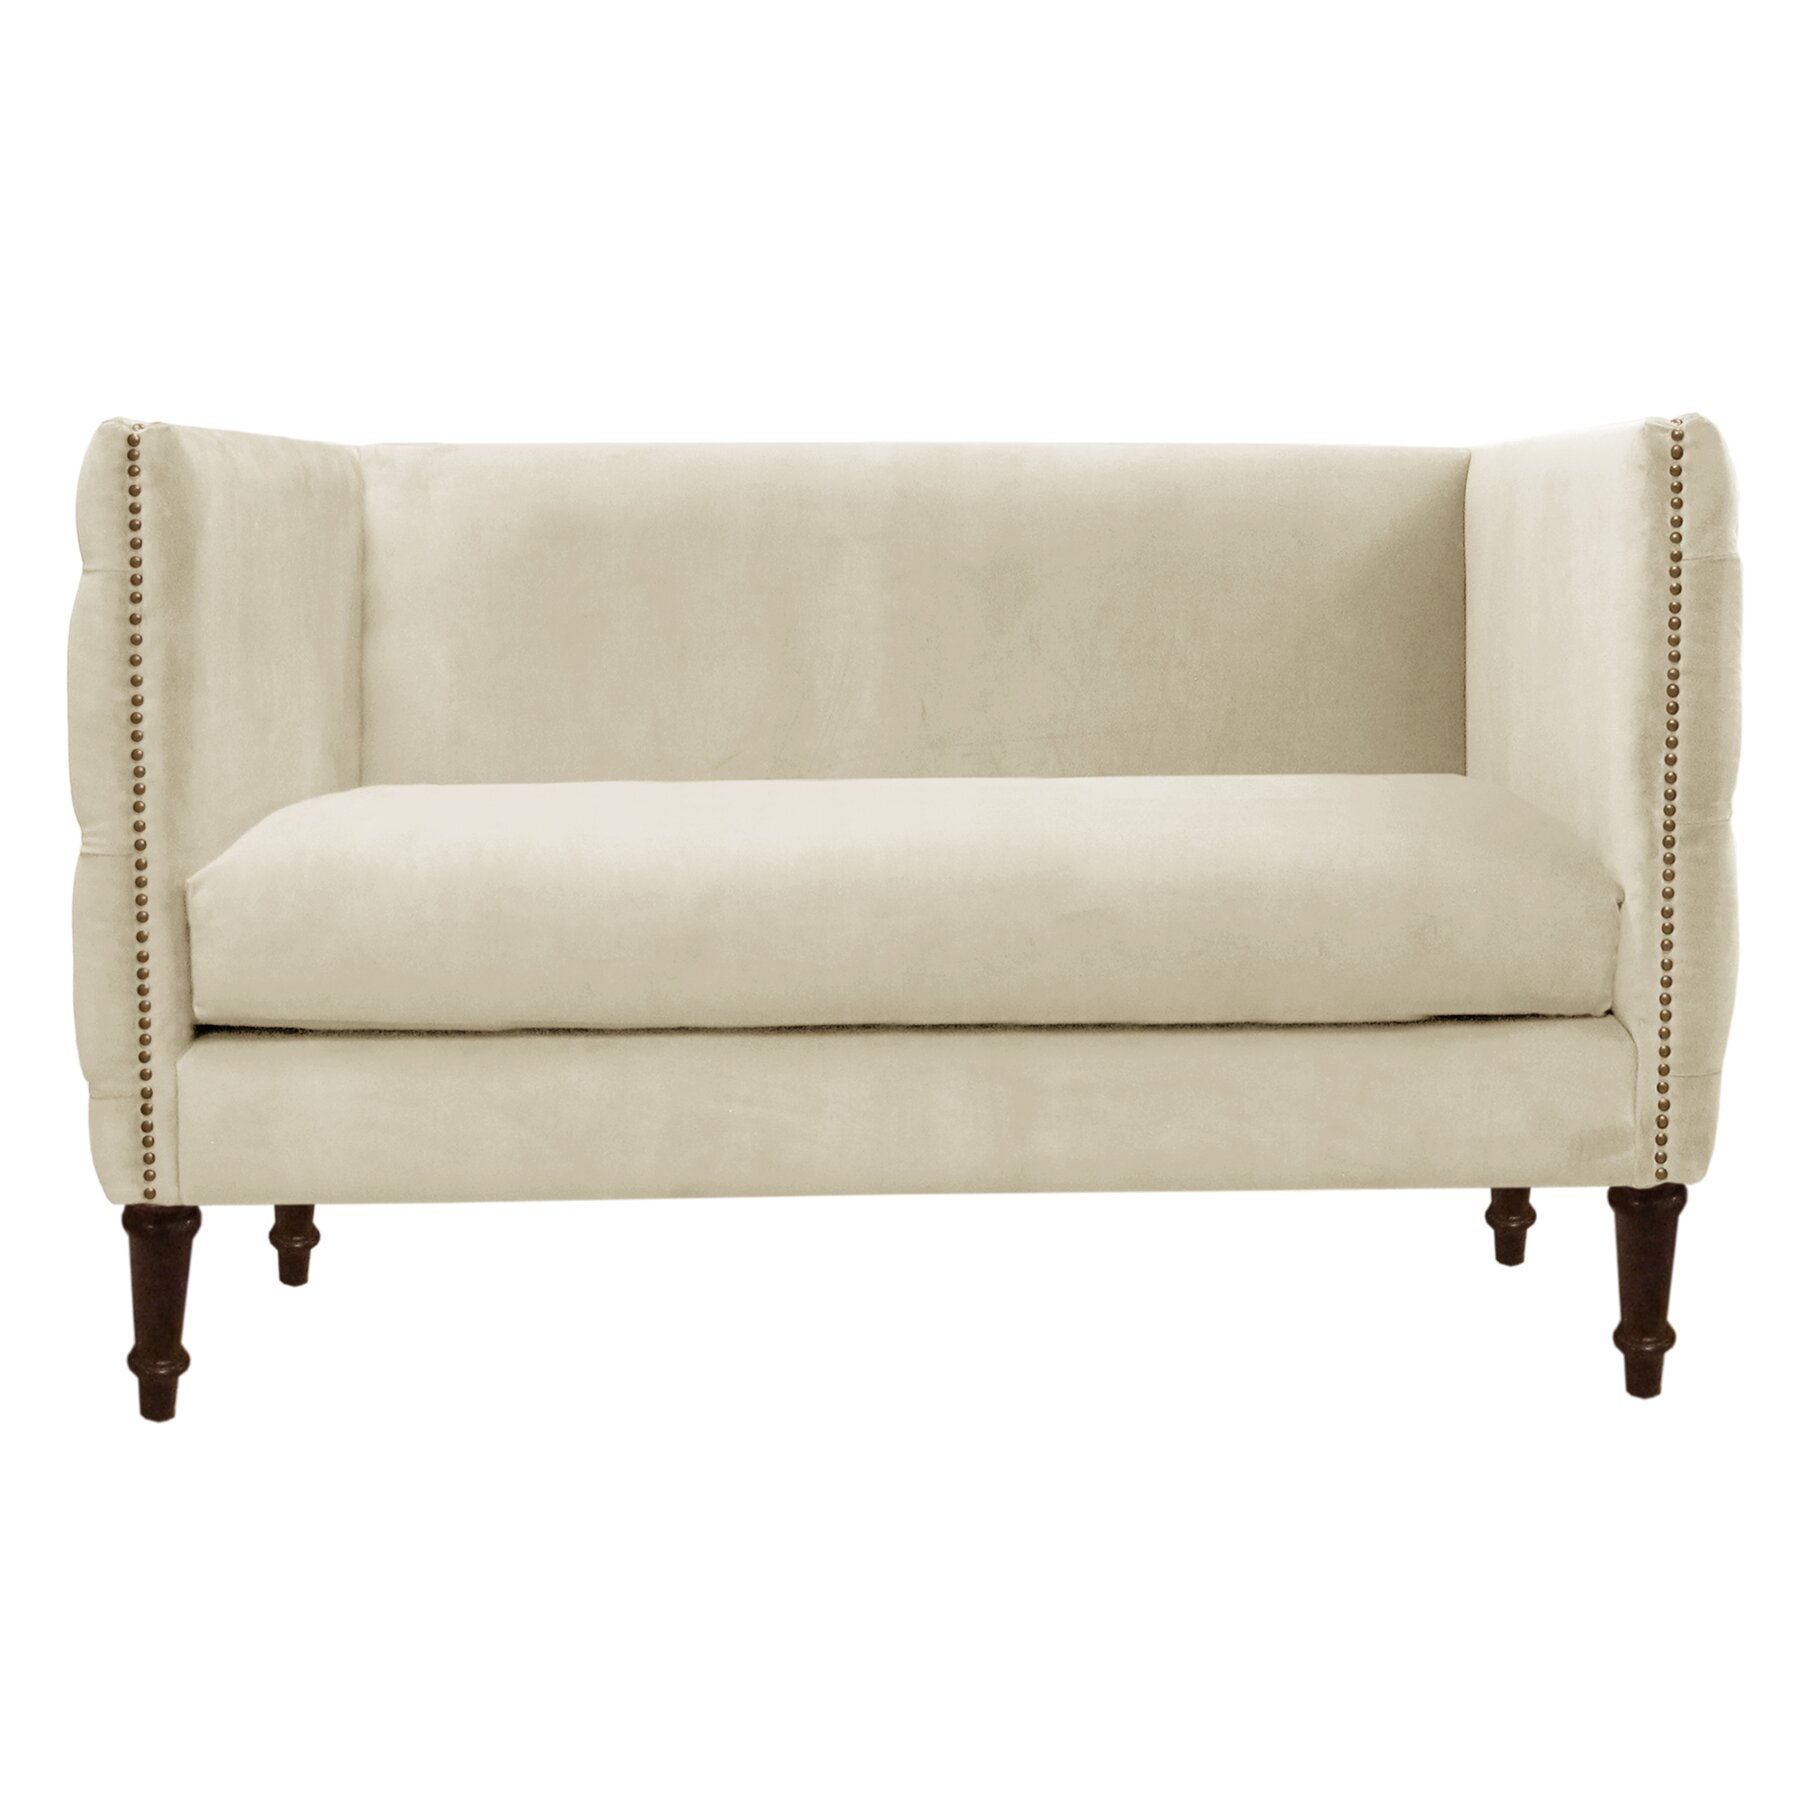 Skyline Furniture Regal Nail Button Tufted Settee Loveseat Reviews Wayfair